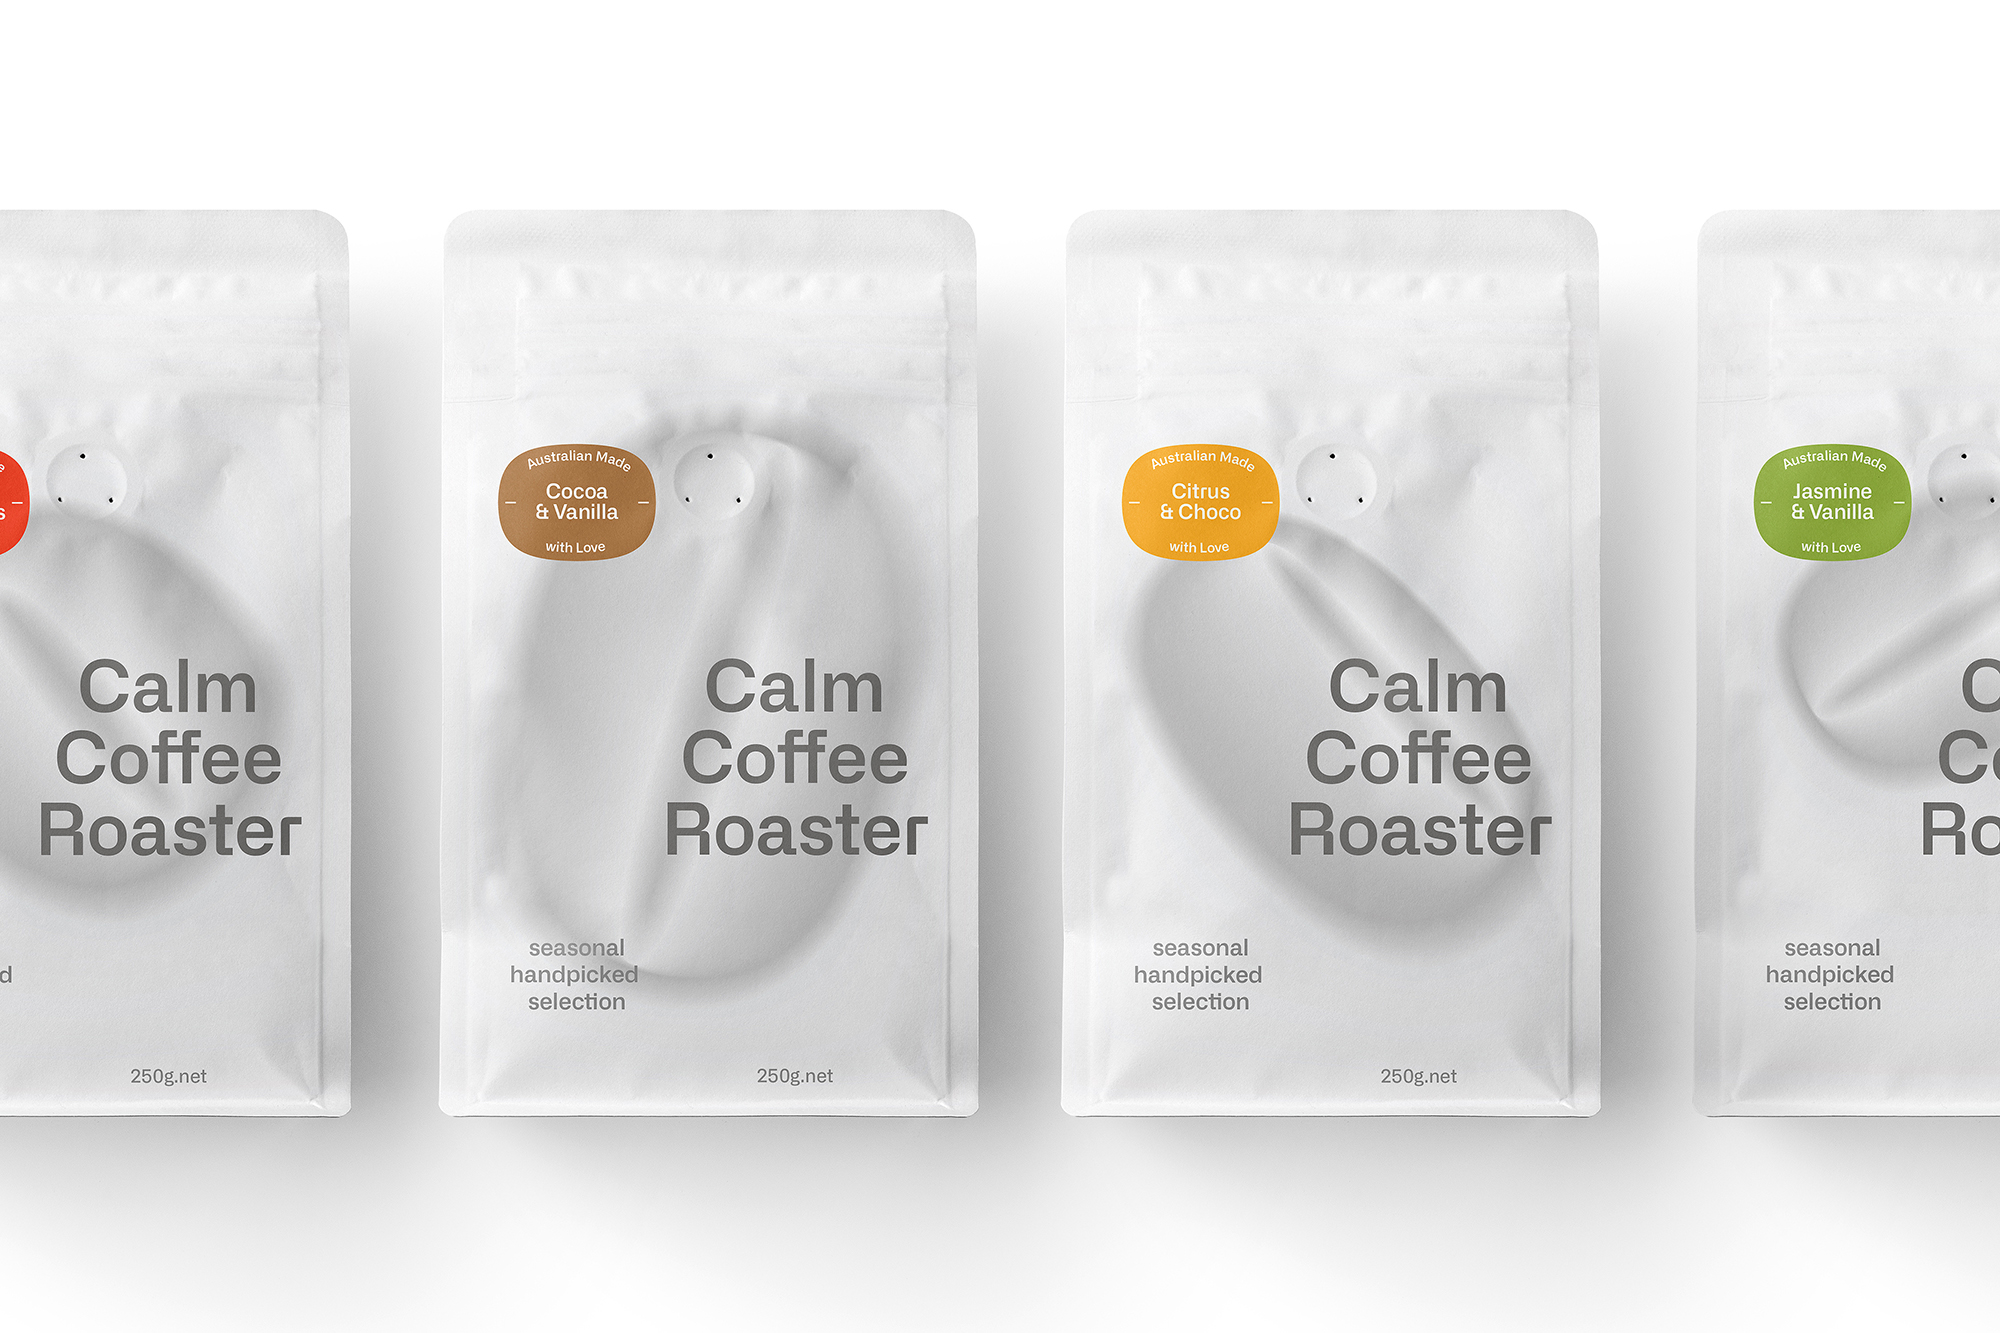 Packaging Design for Calm Coffee Roaster Created by Meng Zhang